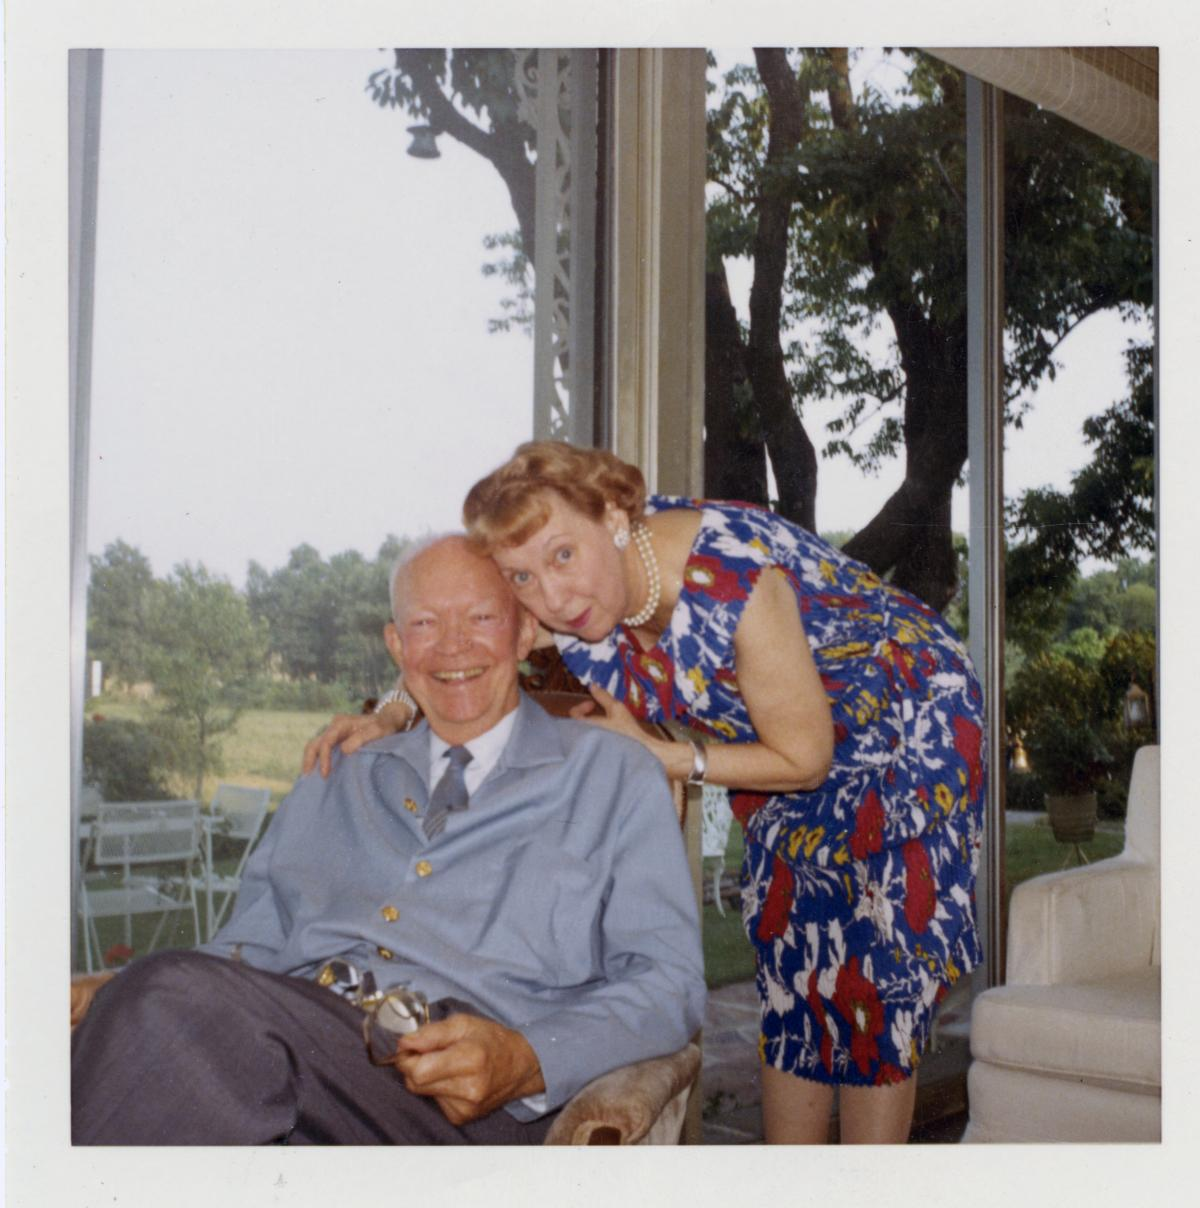 Ike and Mamie at their Gettysburg home.